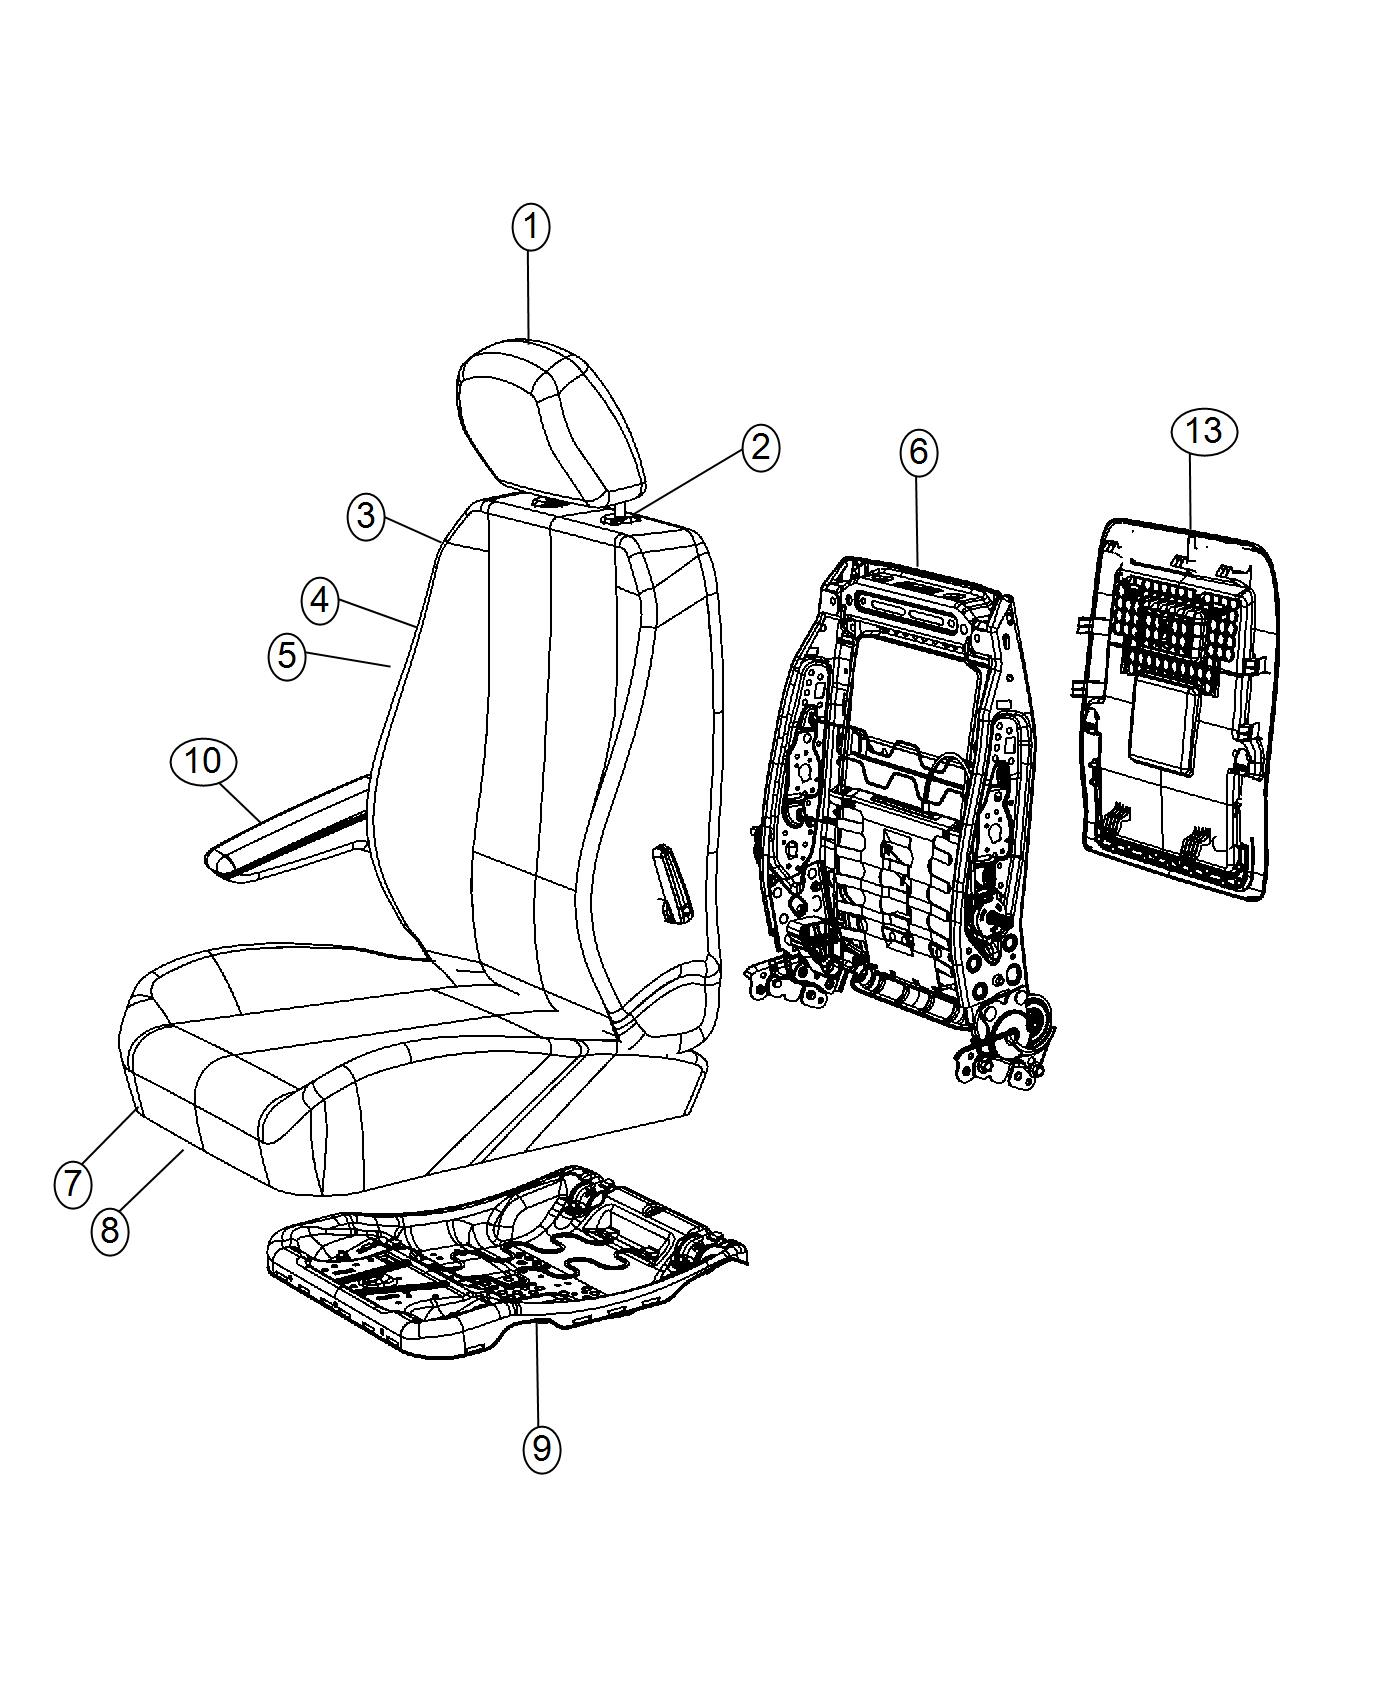 2016 Chrysler Town & Country Armrest. Front seat. Left